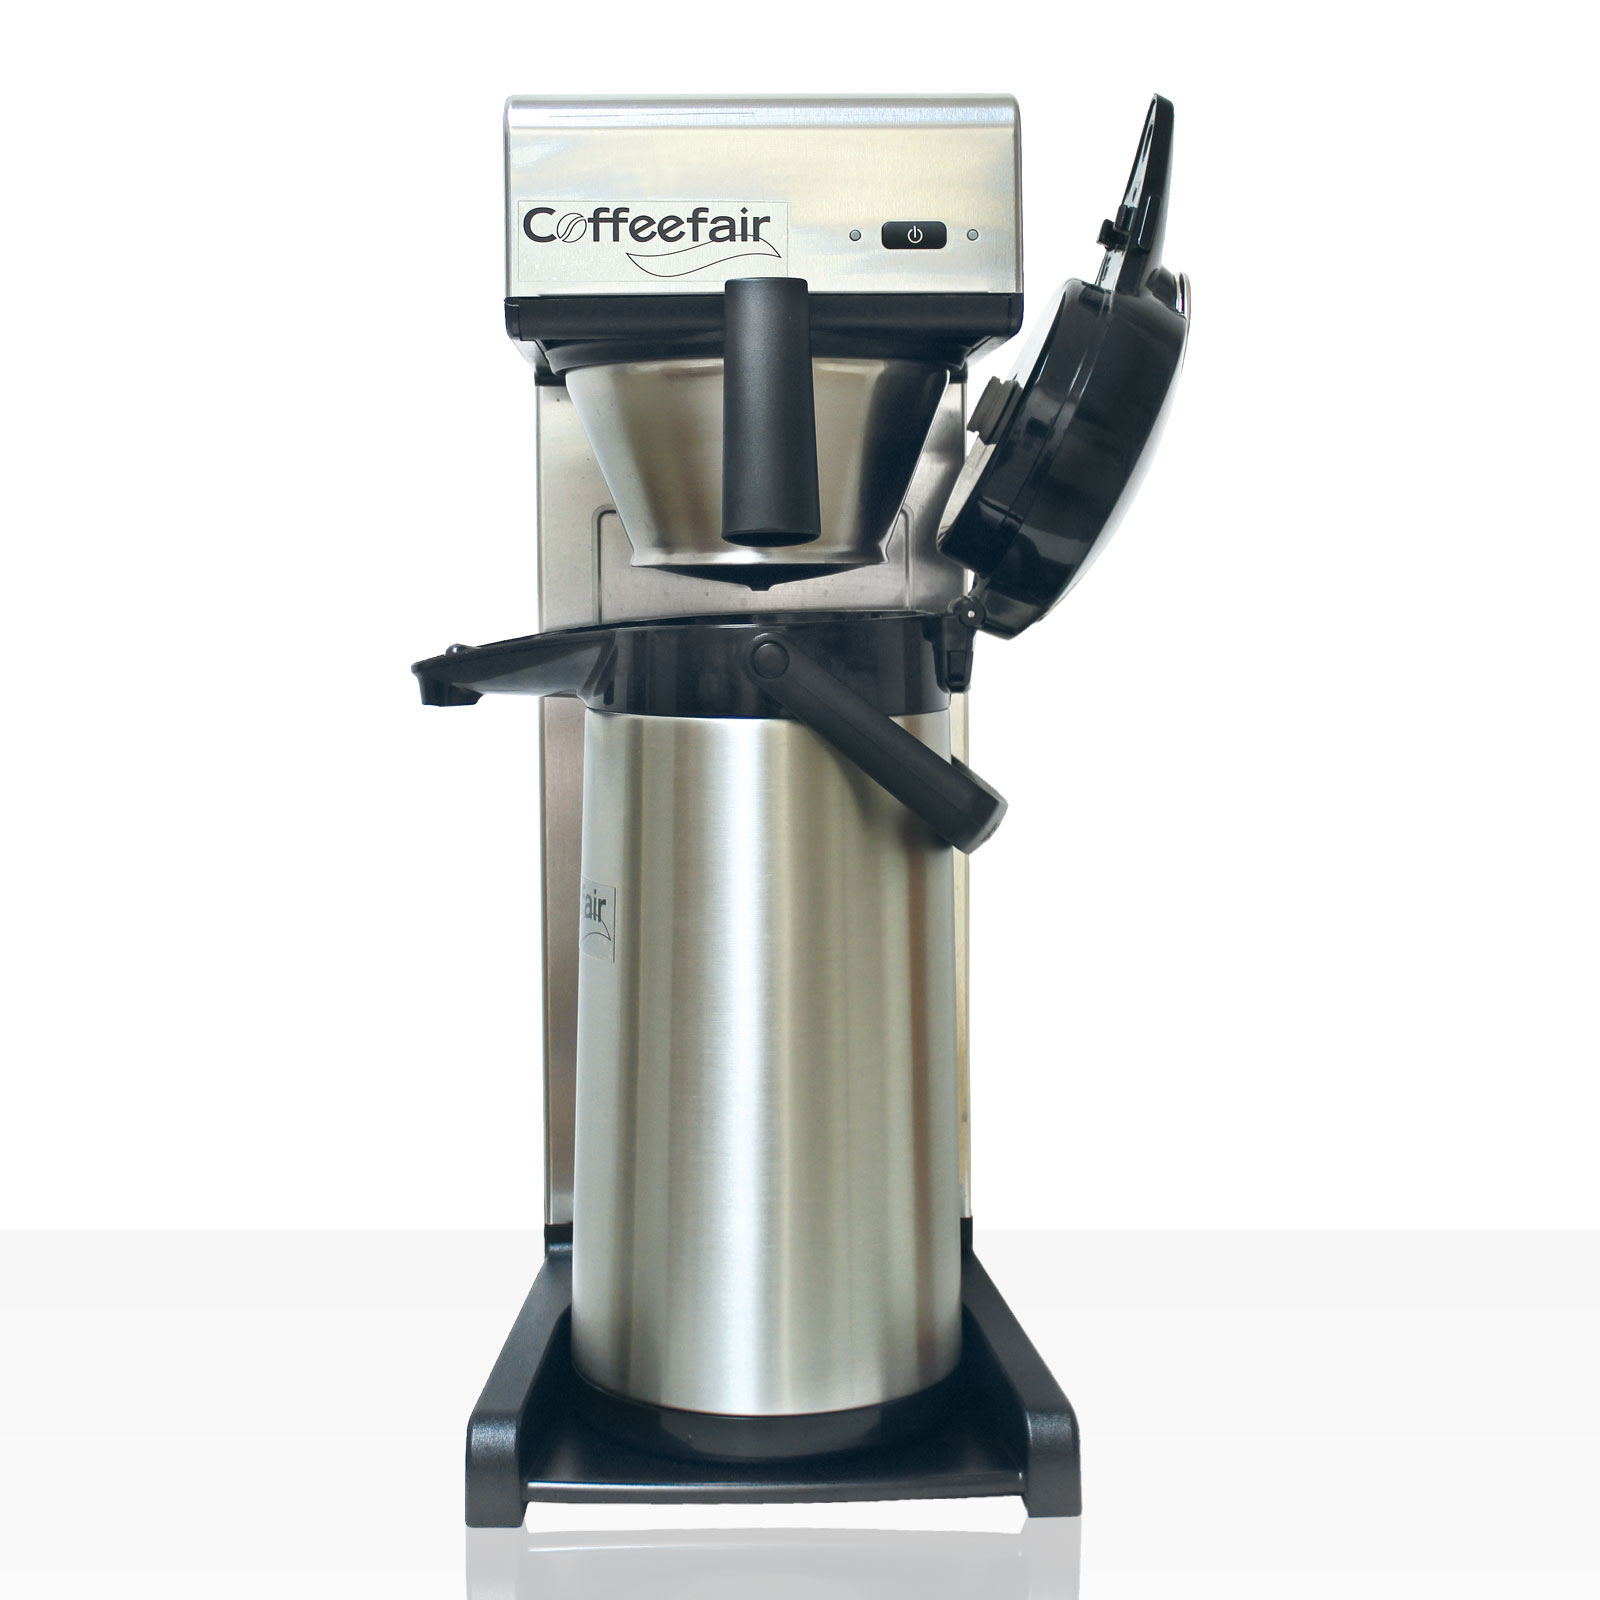 Bonamat TH Kaffeemaschine Coffeefair inkl. Pumpkanne mit Glaseinsatz 2,2l